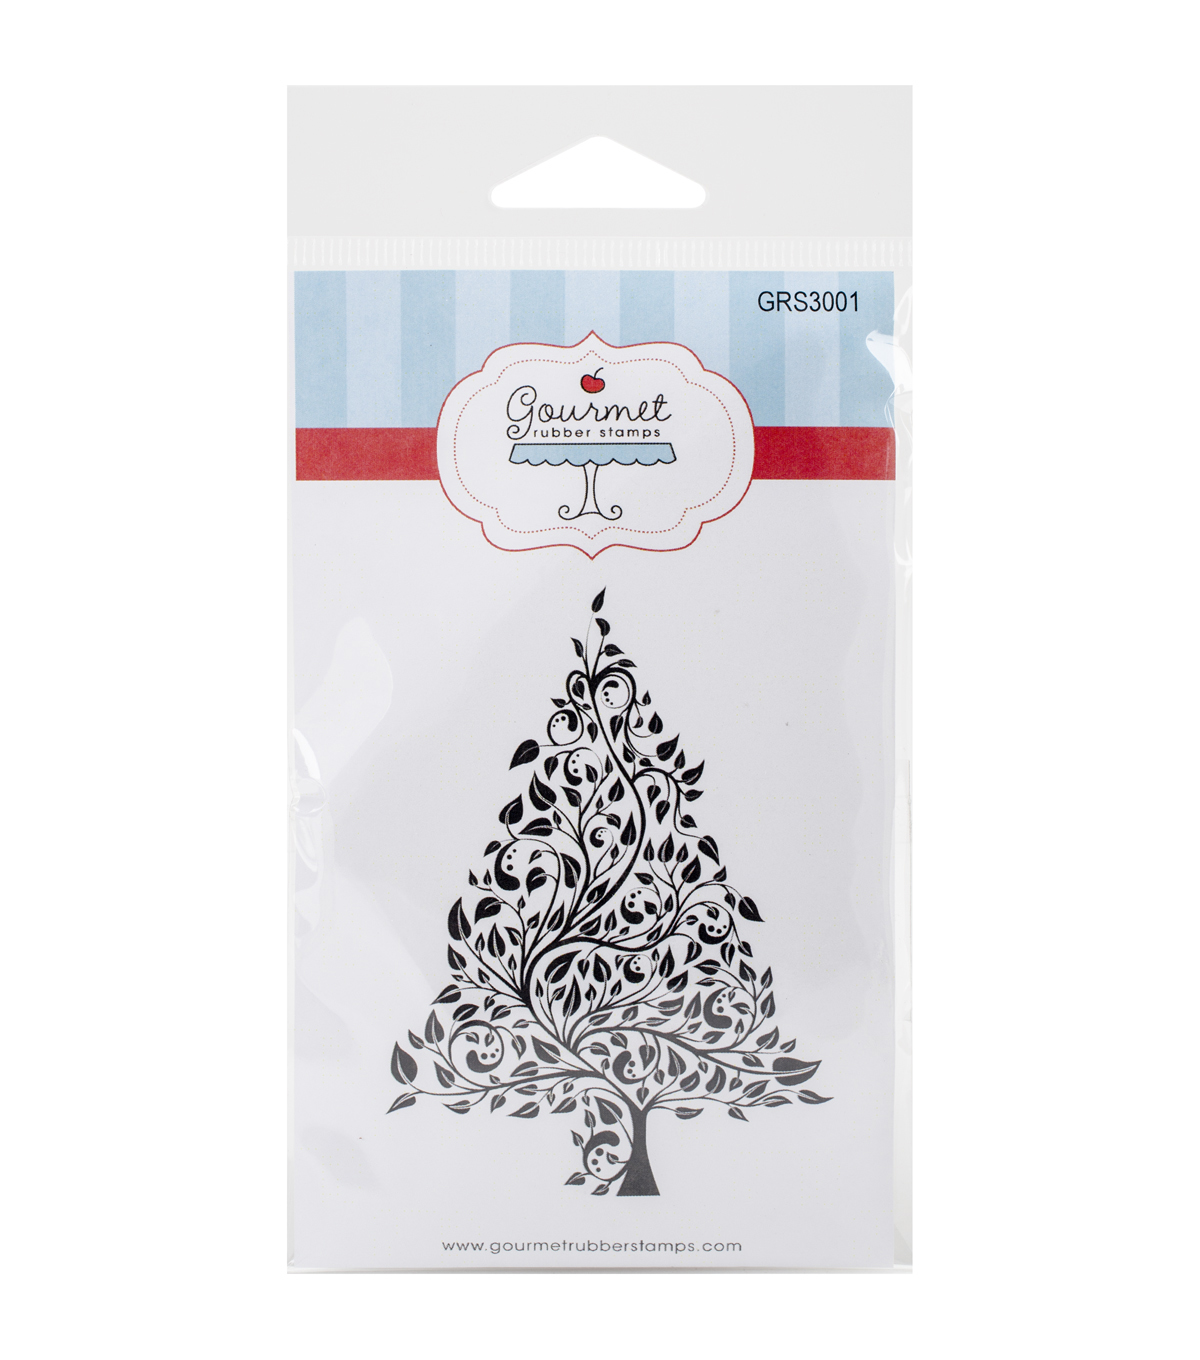 Gourmet Rubber Stamps Cling Stamps-Large Seasonal Tree